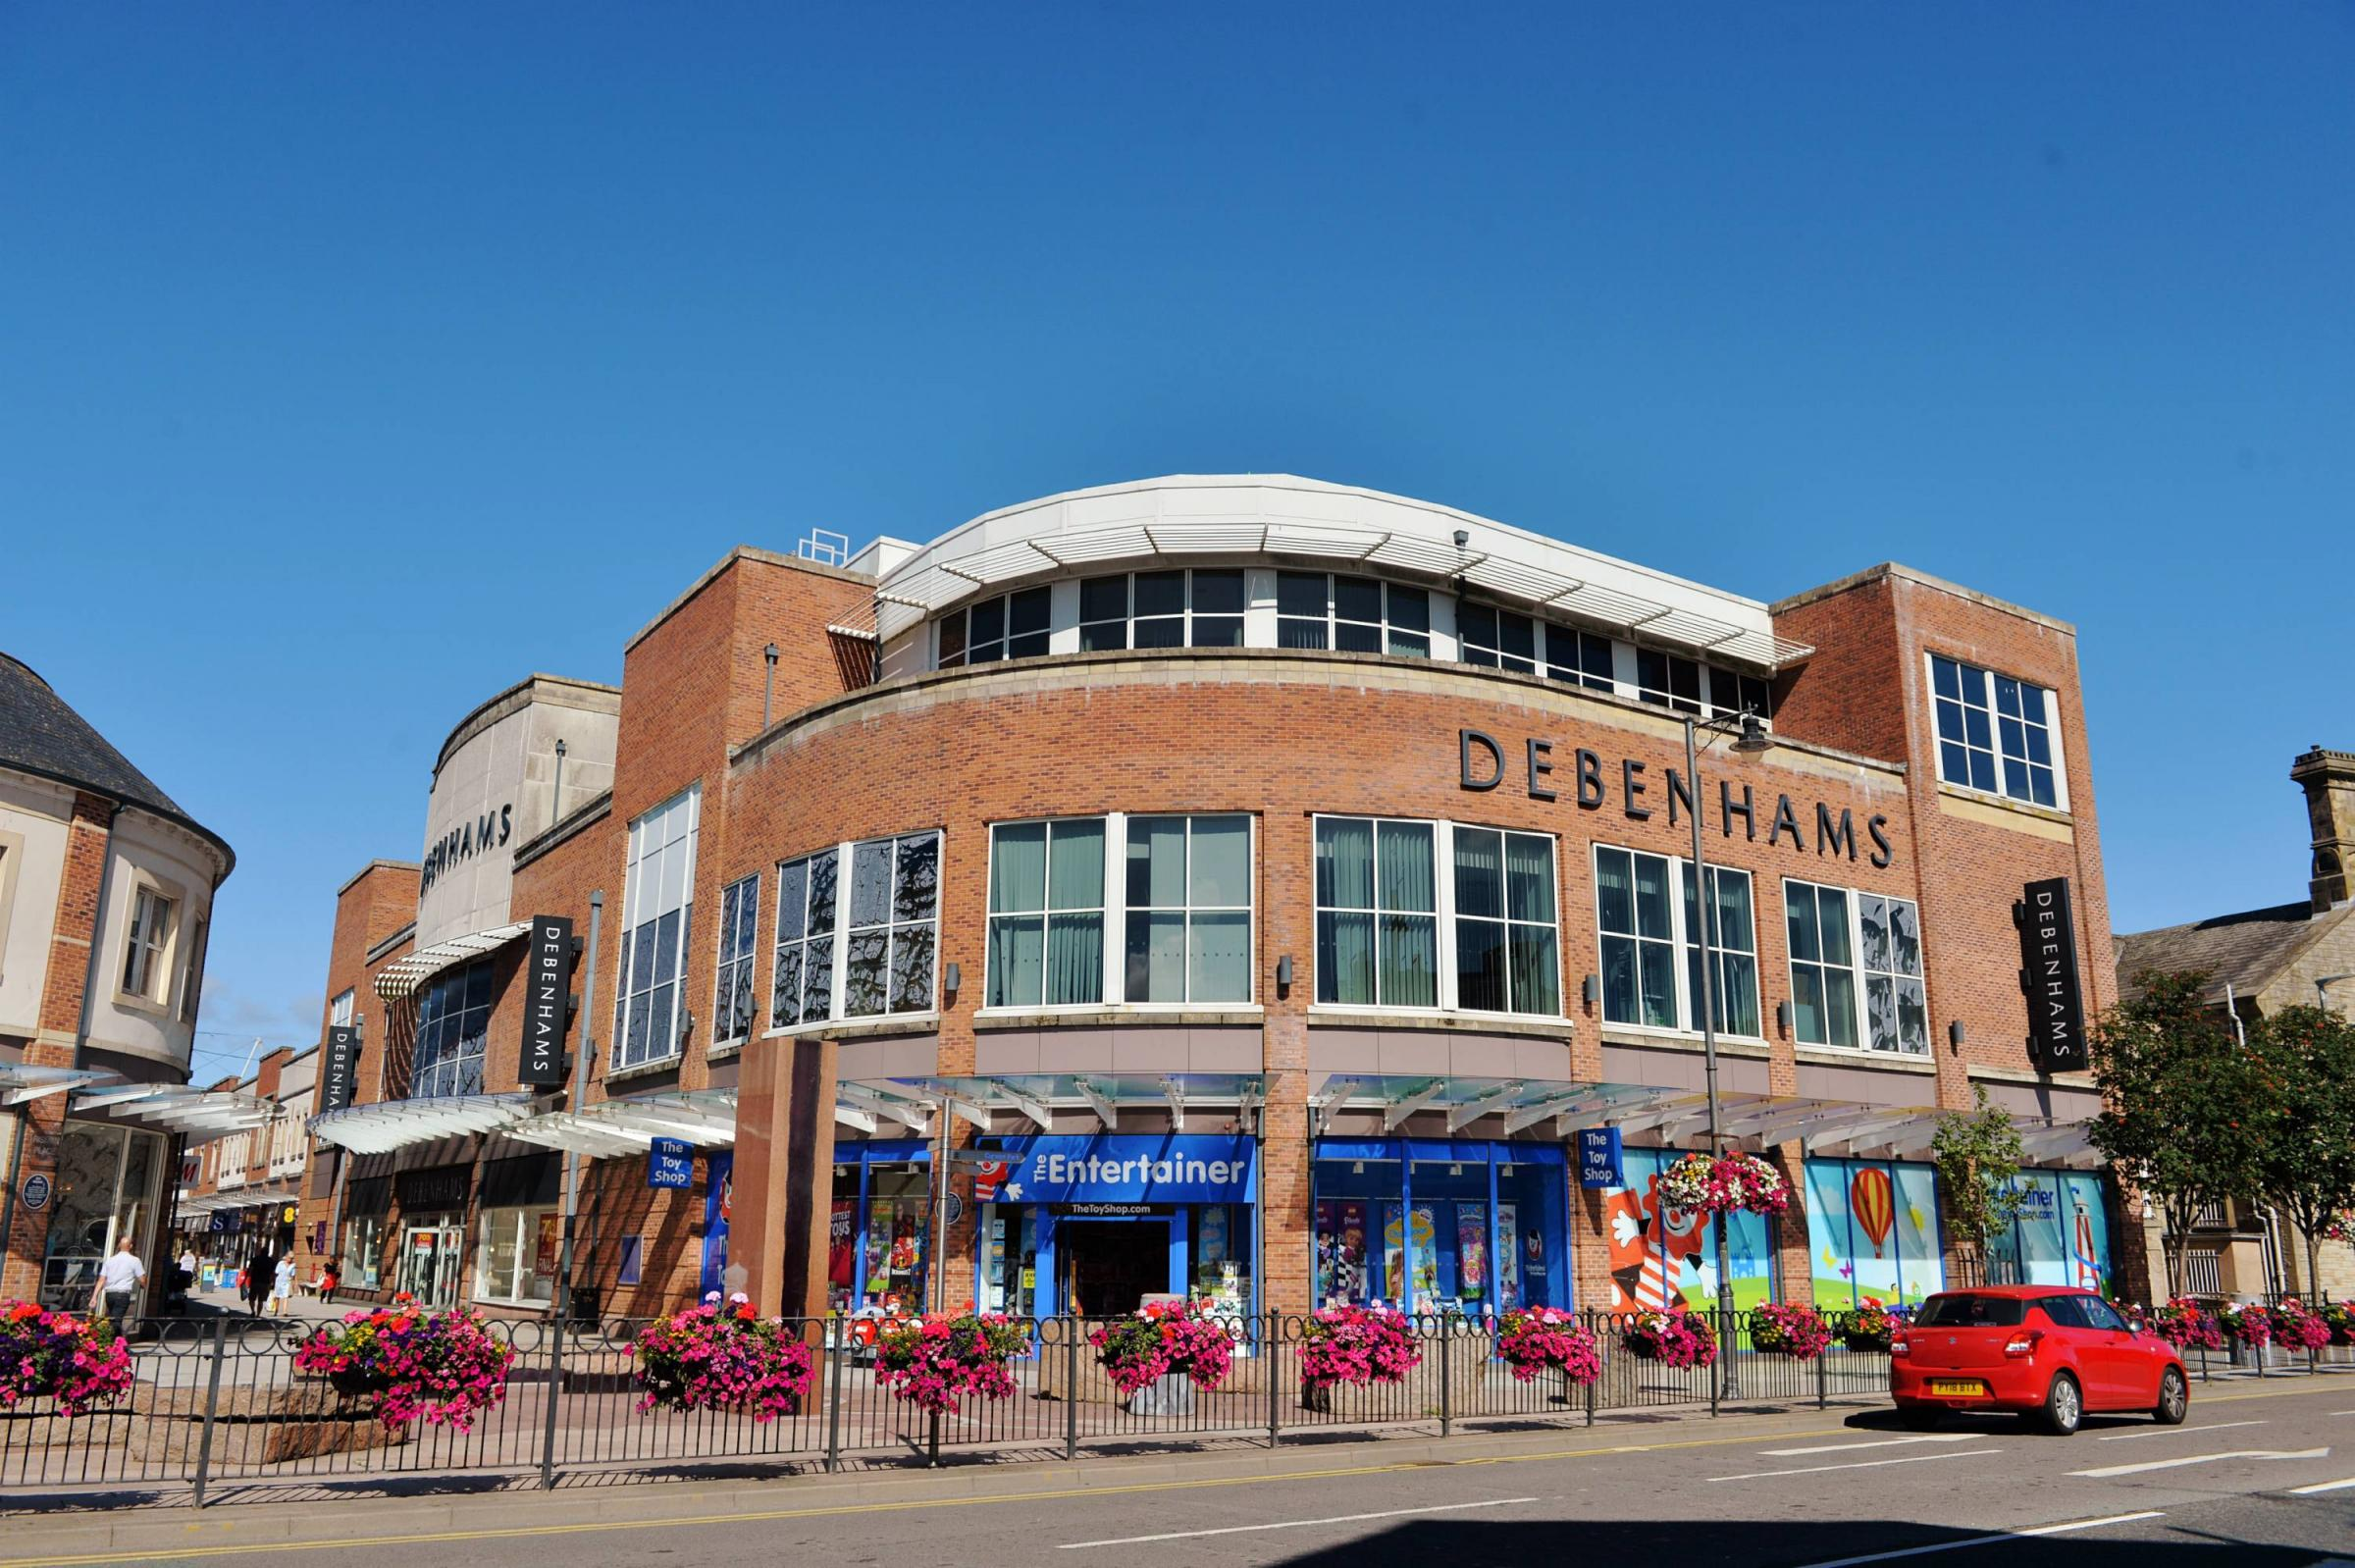 Debenhams in Workington